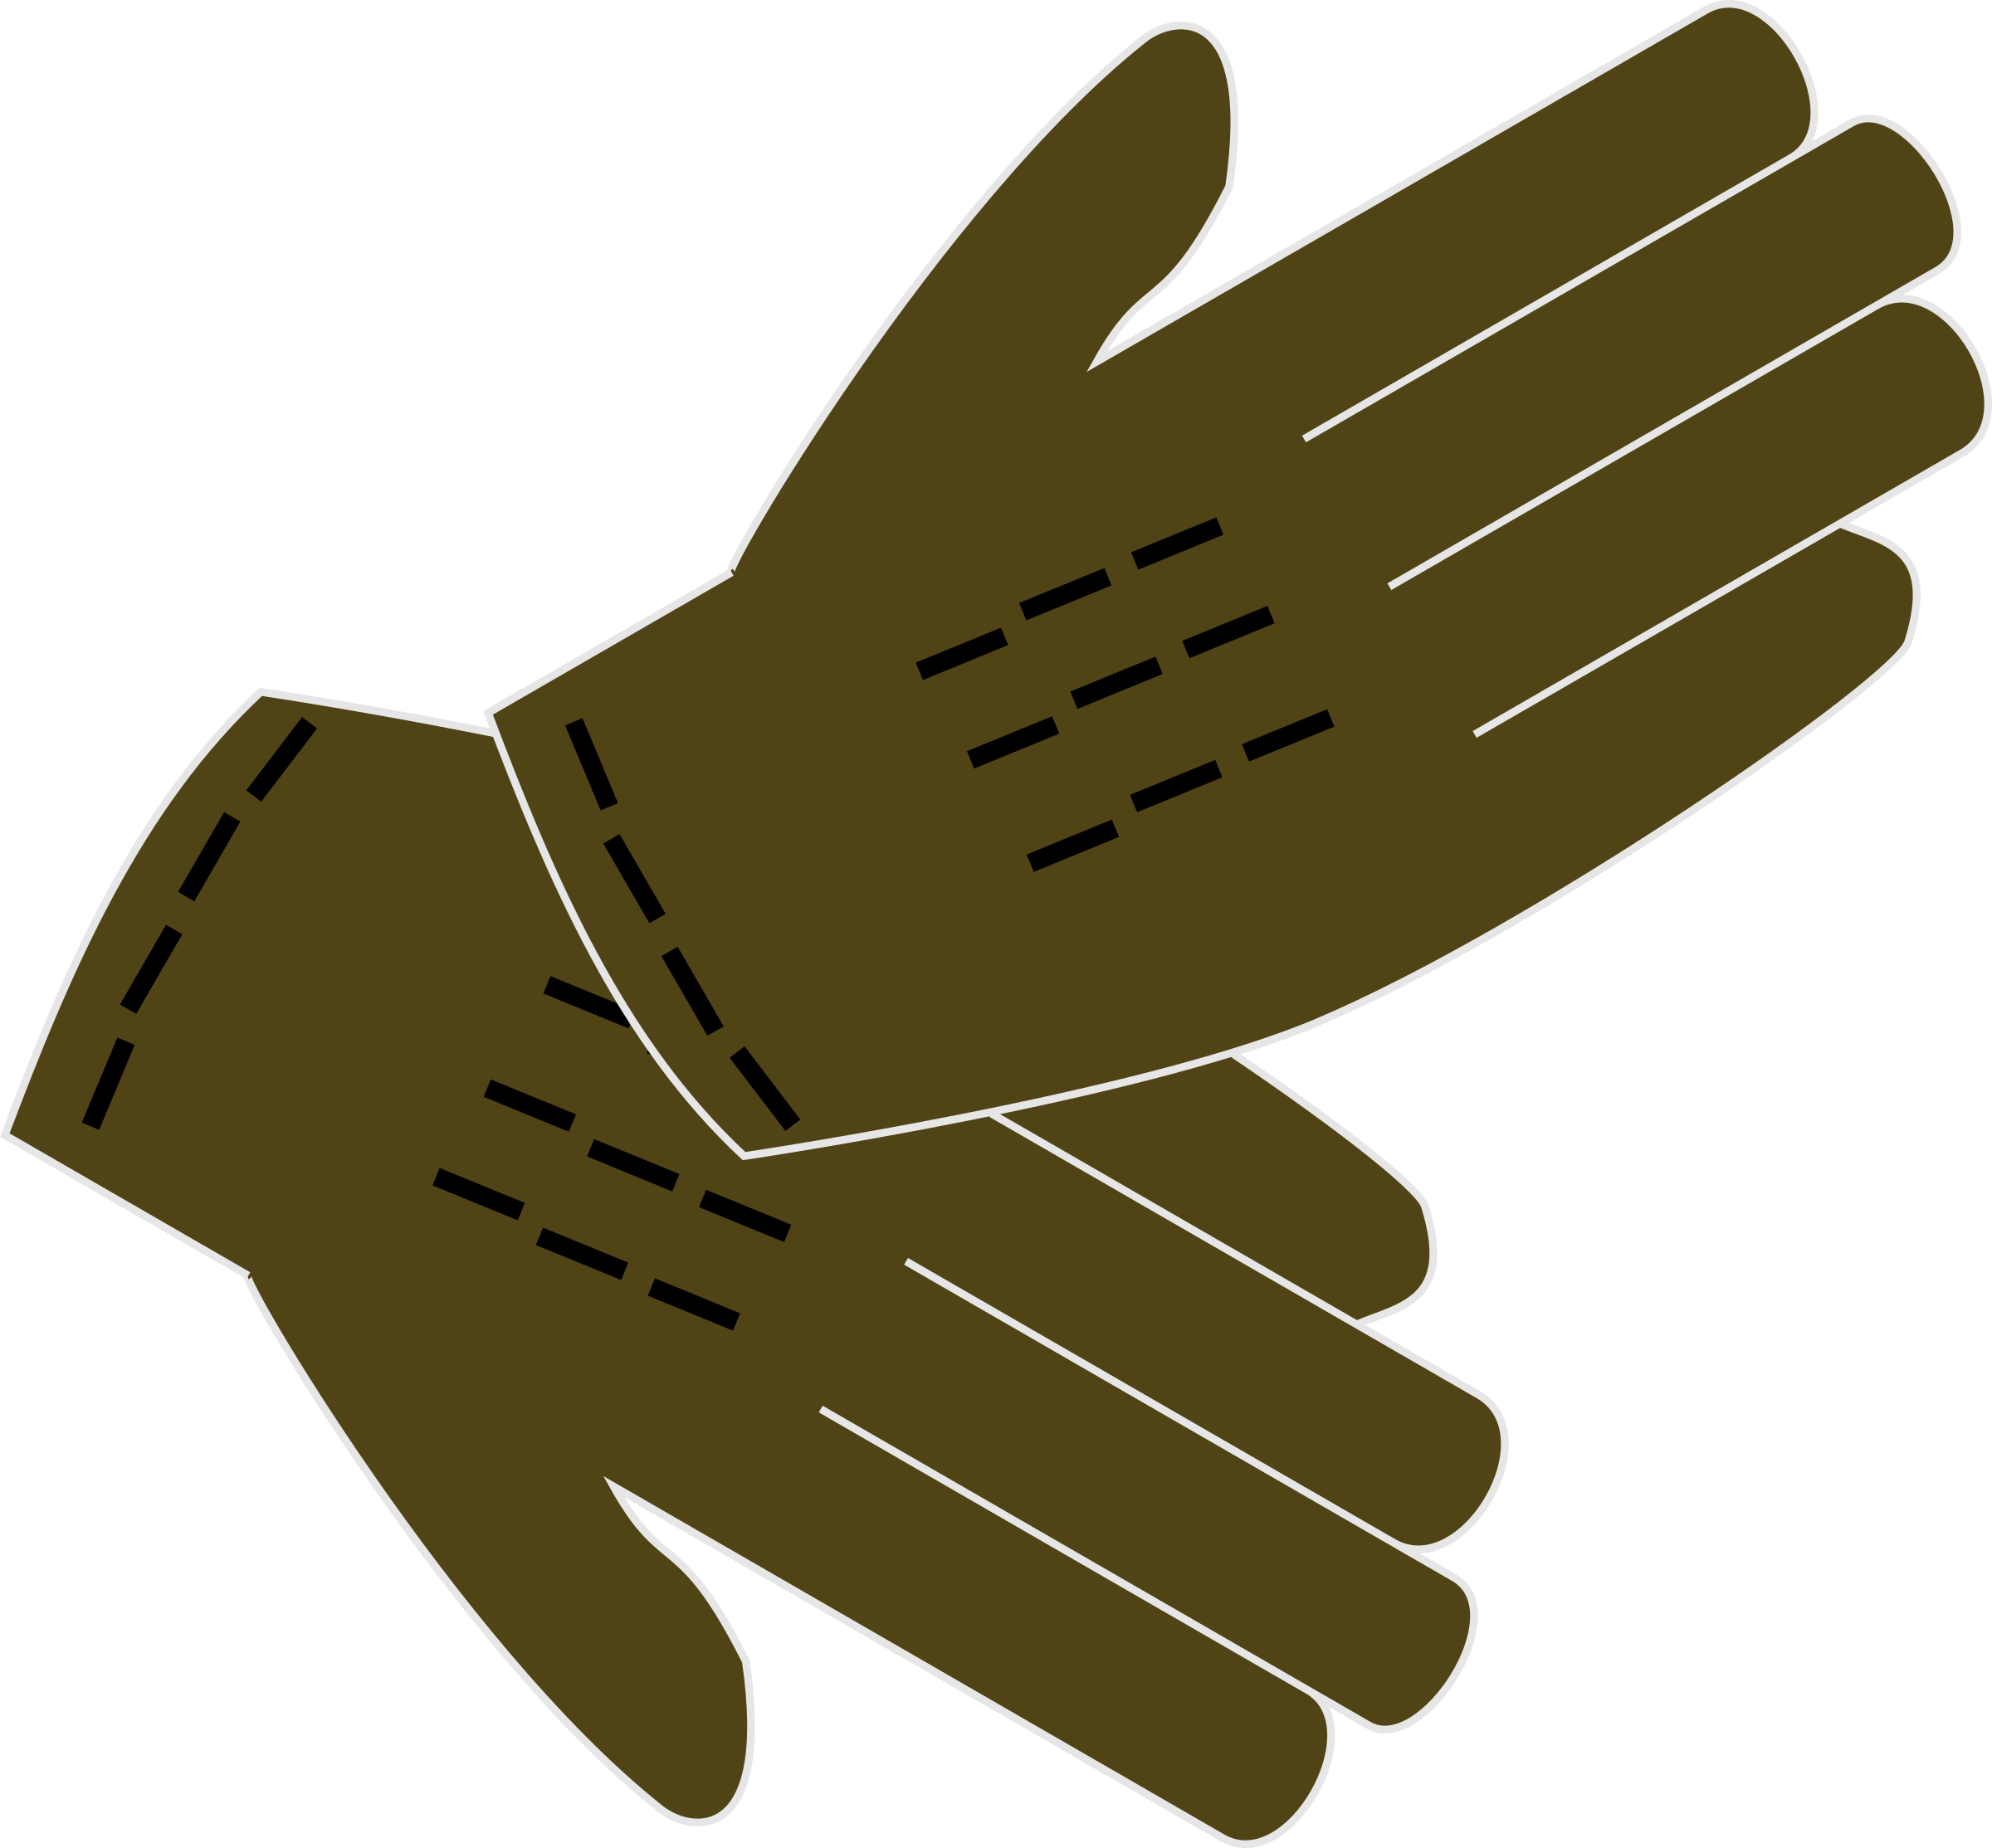 Gloves big image png. Glove clipart ppe equipment